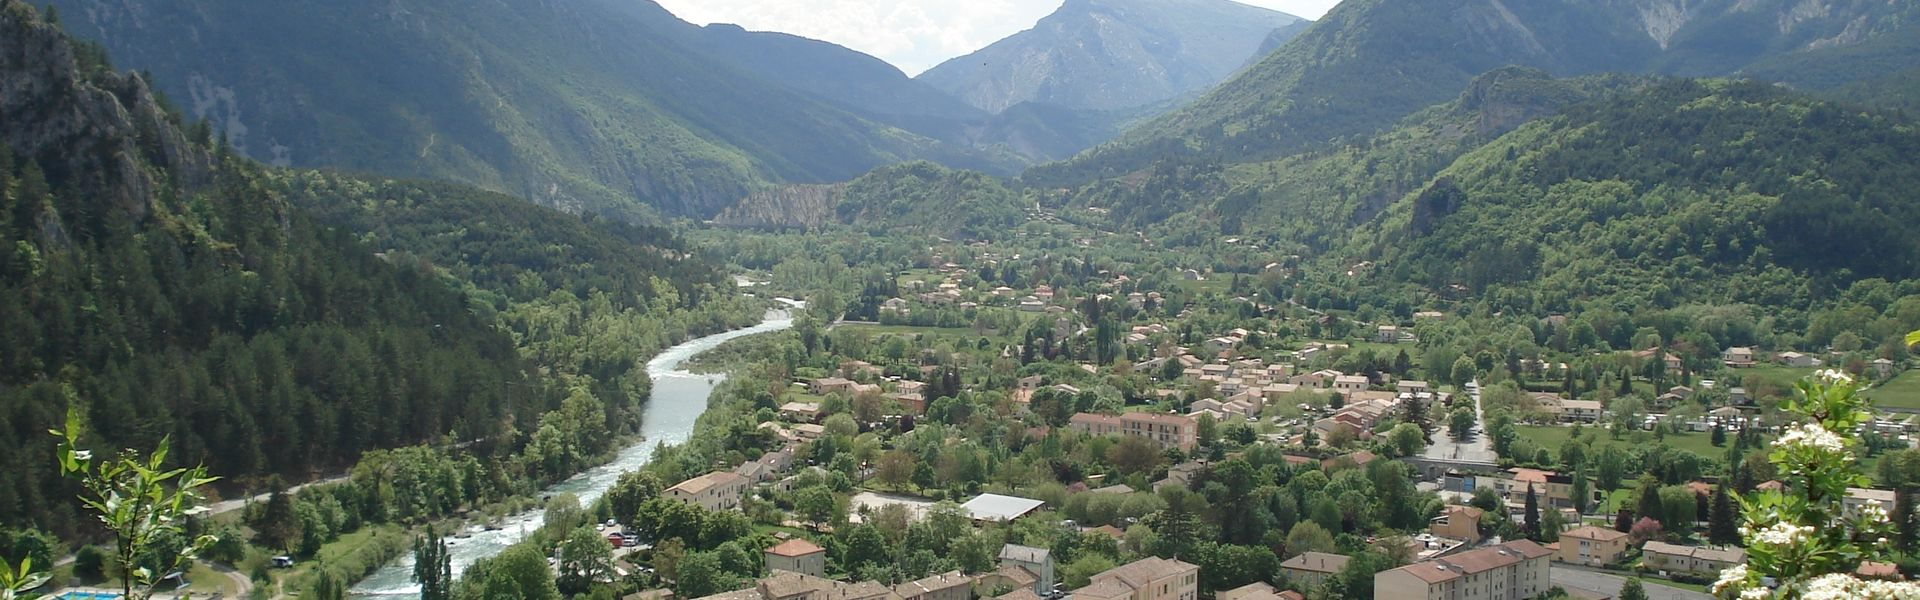 Campings in Castellane